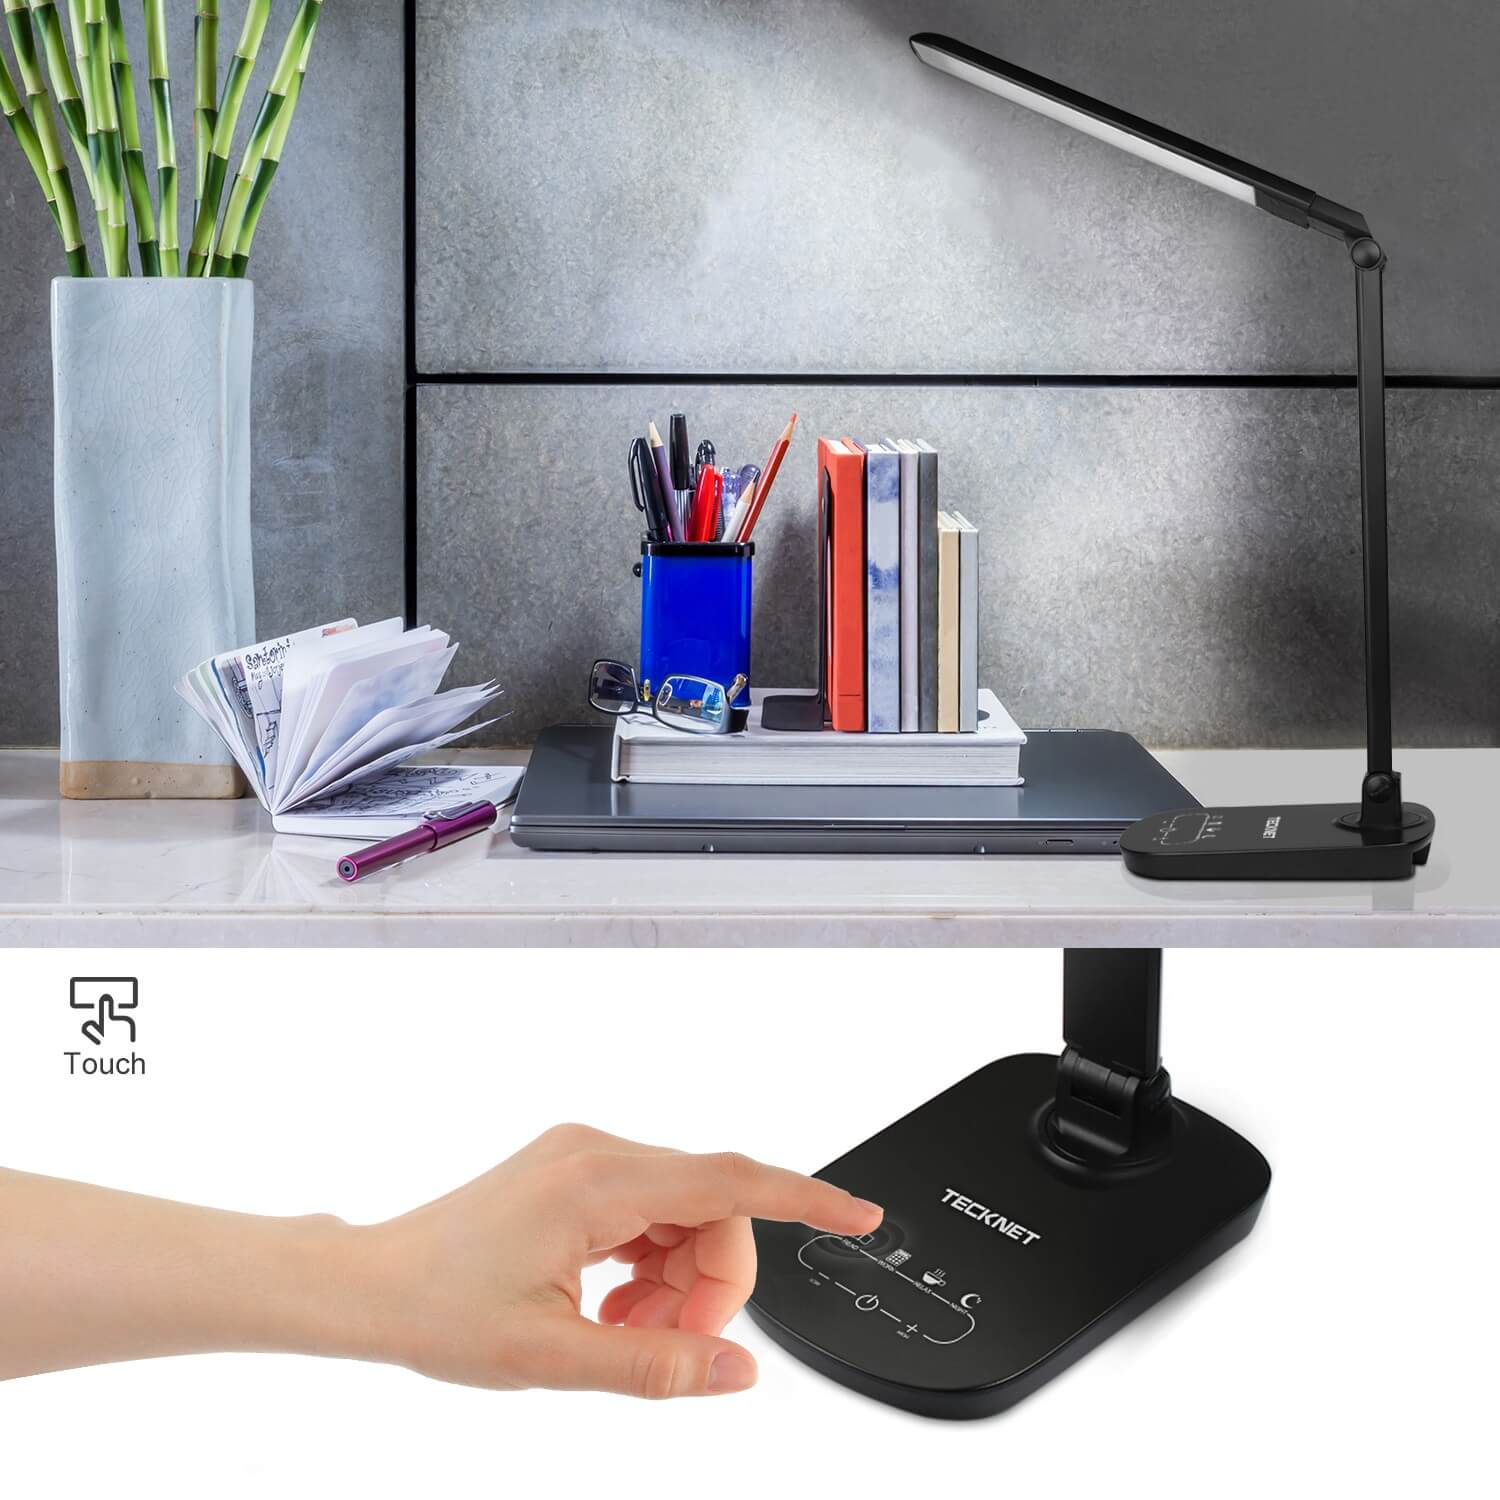 Tecknet Led12 15w Eyecare Dimmable Led Desk Lighting With Touch Control 3